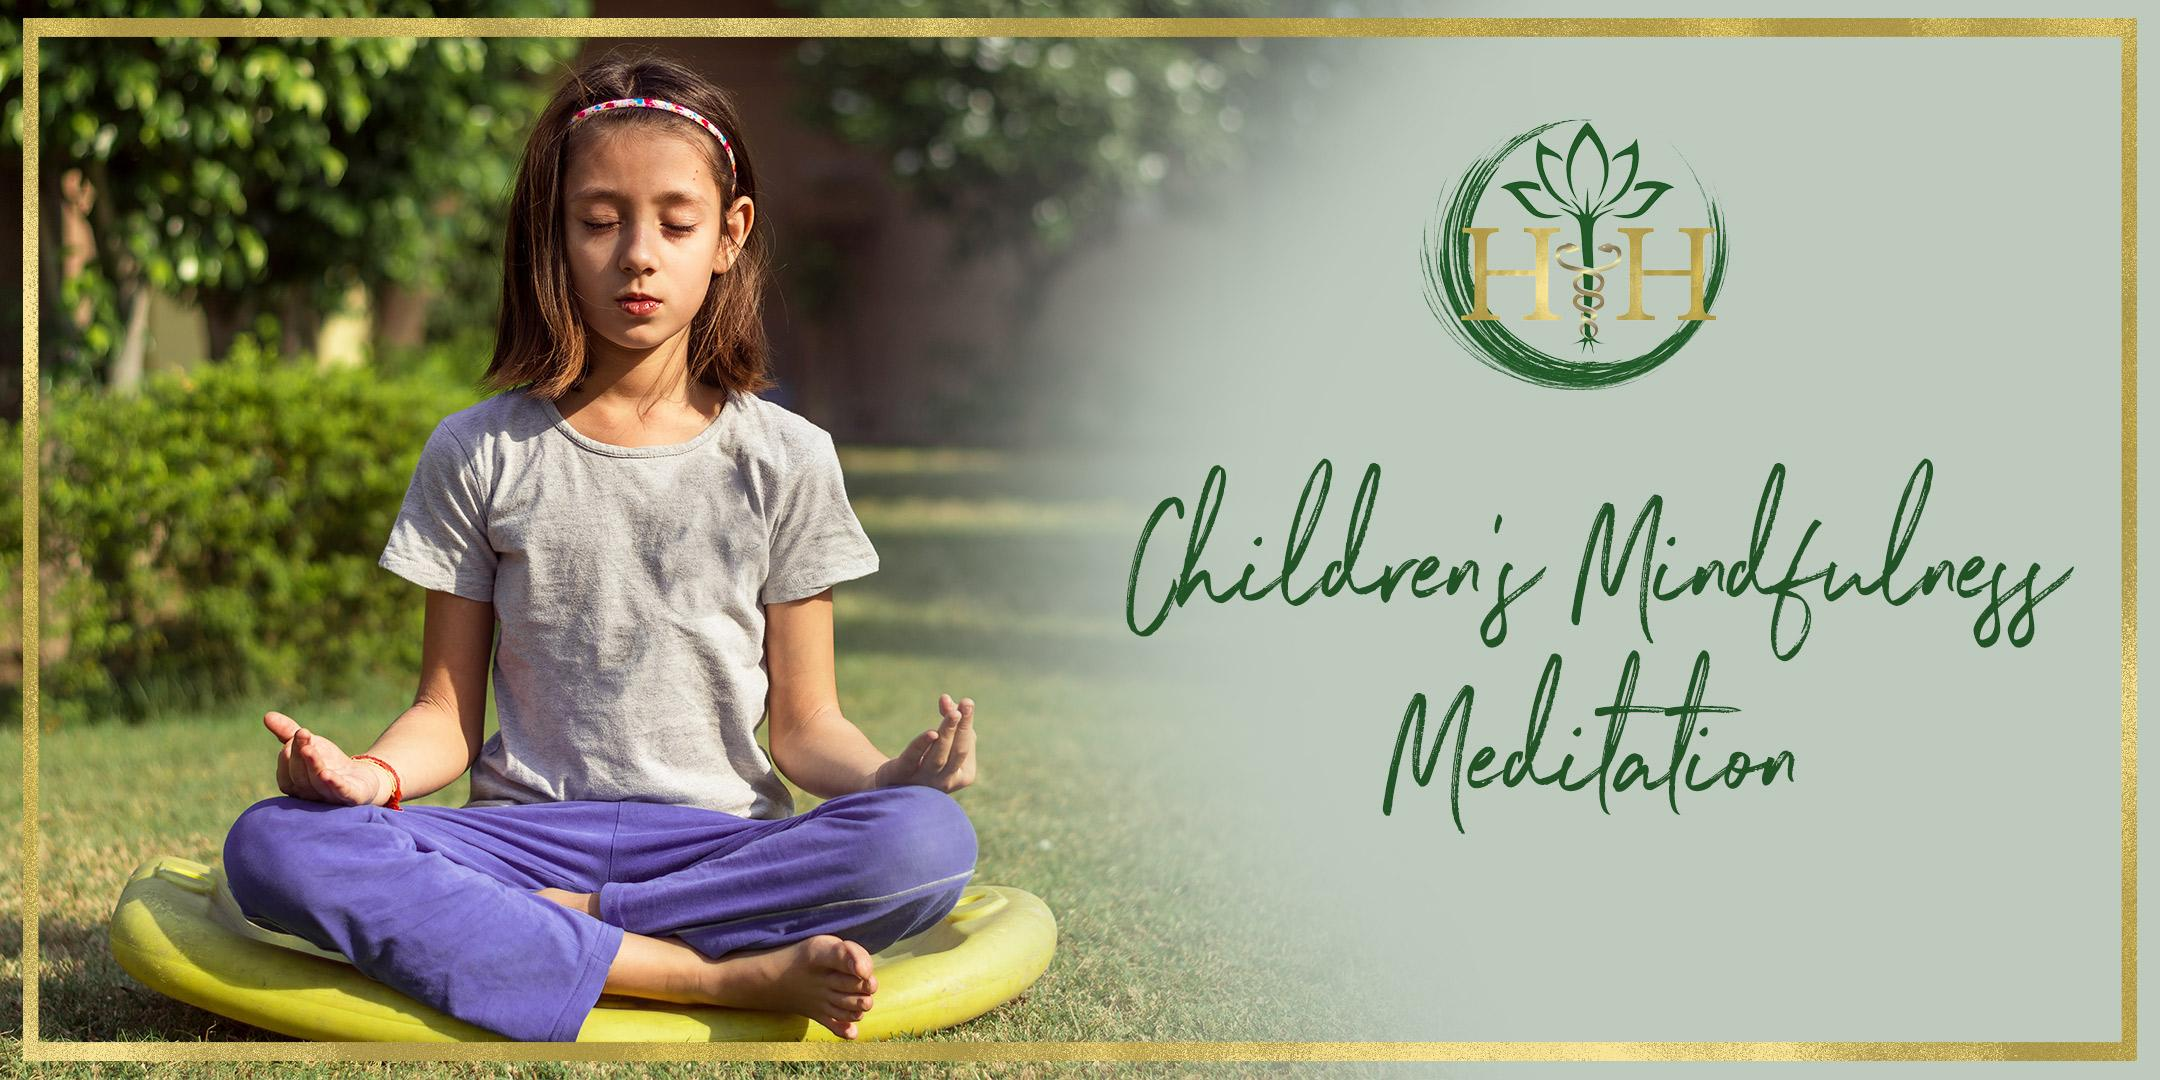 Children's Mindfulness 6-10yrs